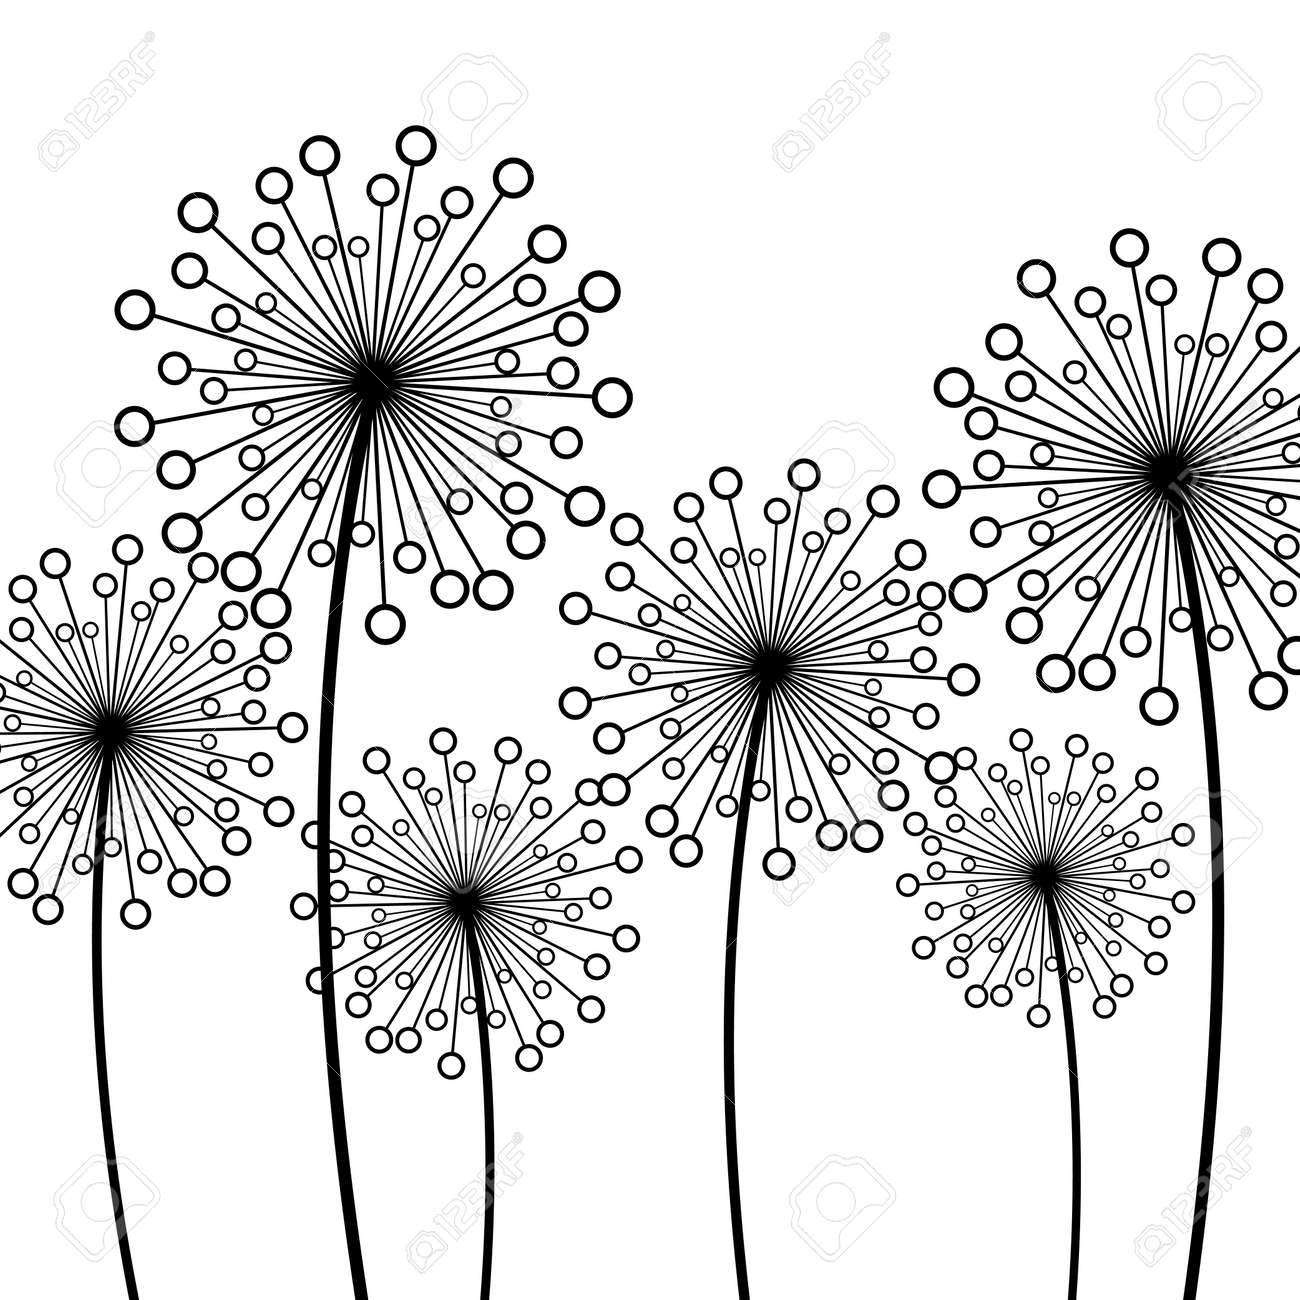 Abstract White Background With Black Stylized Decorative Dandelions